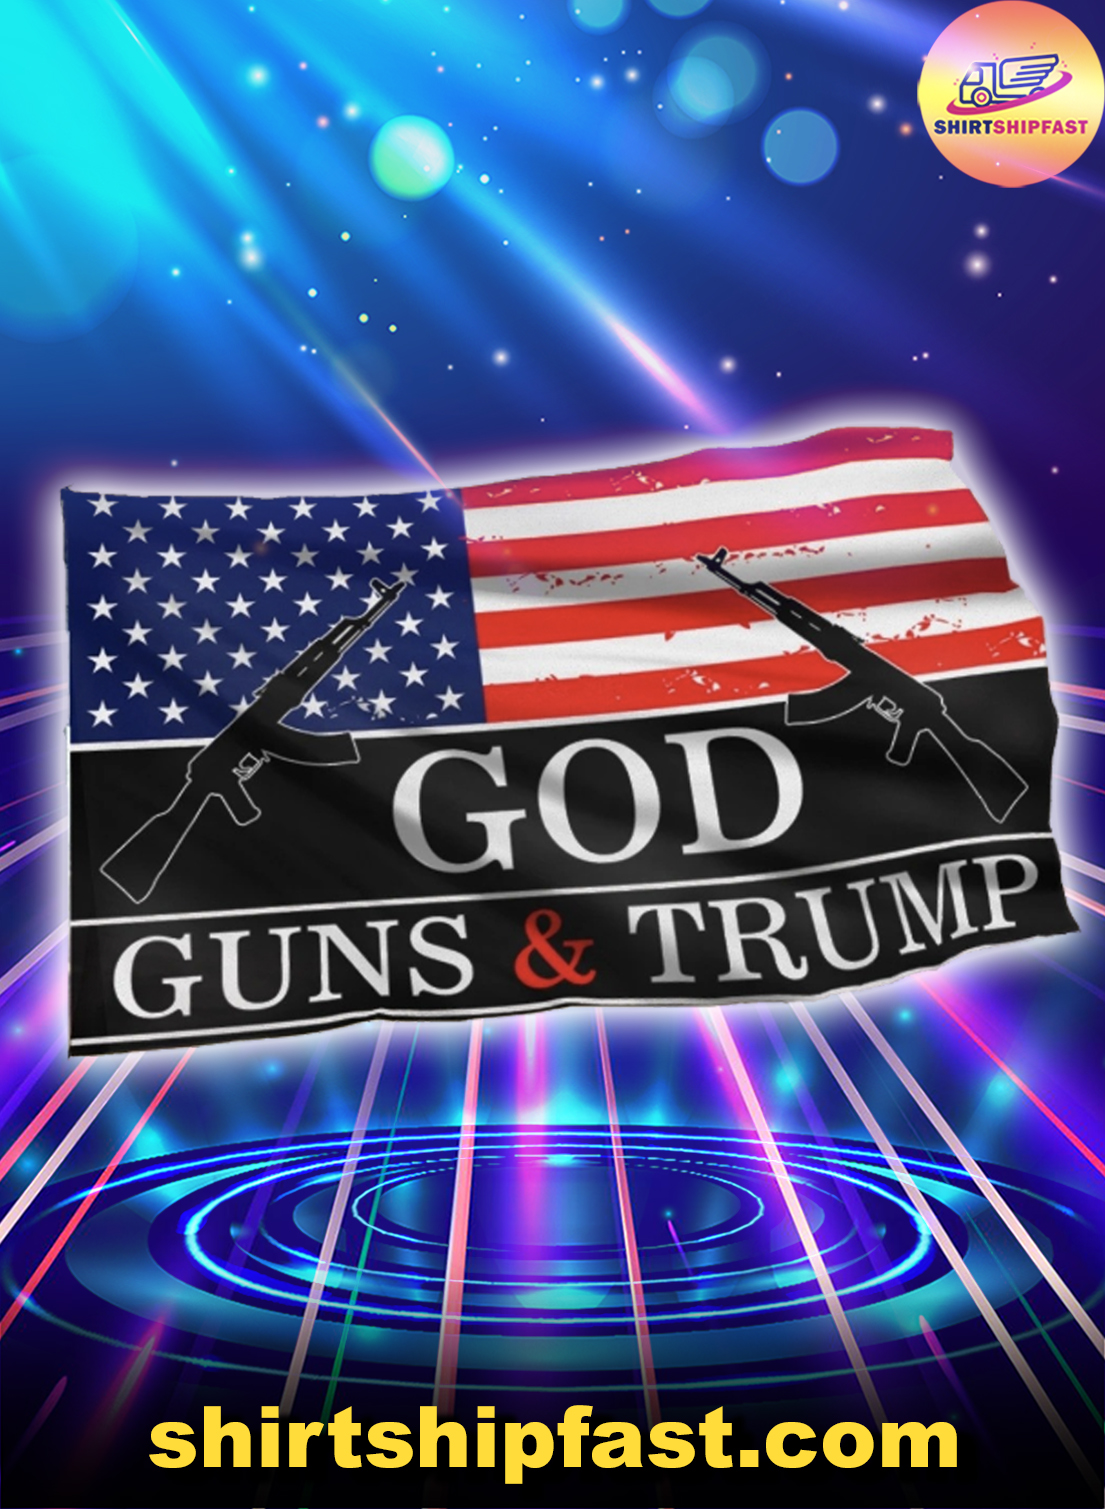 God guns and Trump flag - House and Garden Flag - Picture 1